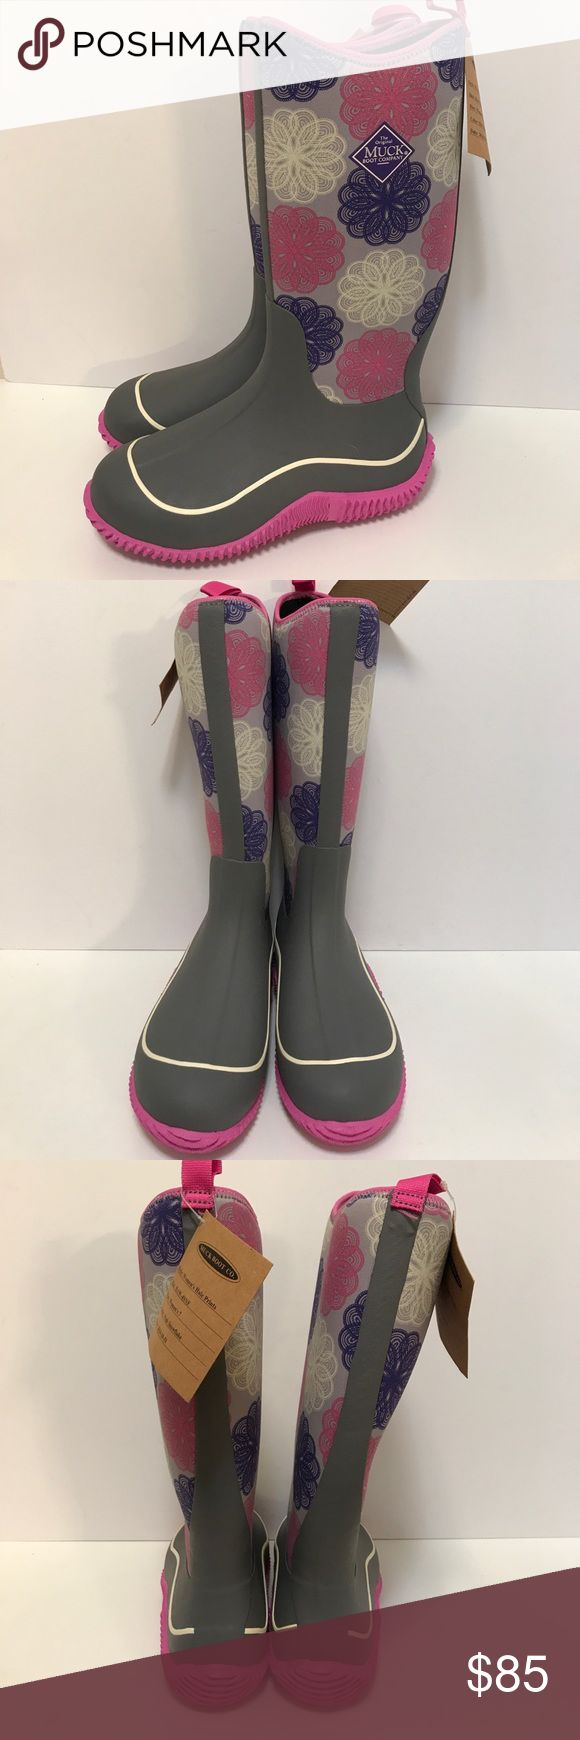 "Muck Boots Hale All Weather Rain Snow Size 7 Brand new, never worn.  Tags still attached.  Total height is 14"" from sole to top of boot.  100% Waterproof.  Fully lined.  A5 muck boots Shoes Winter & Rain Boots"